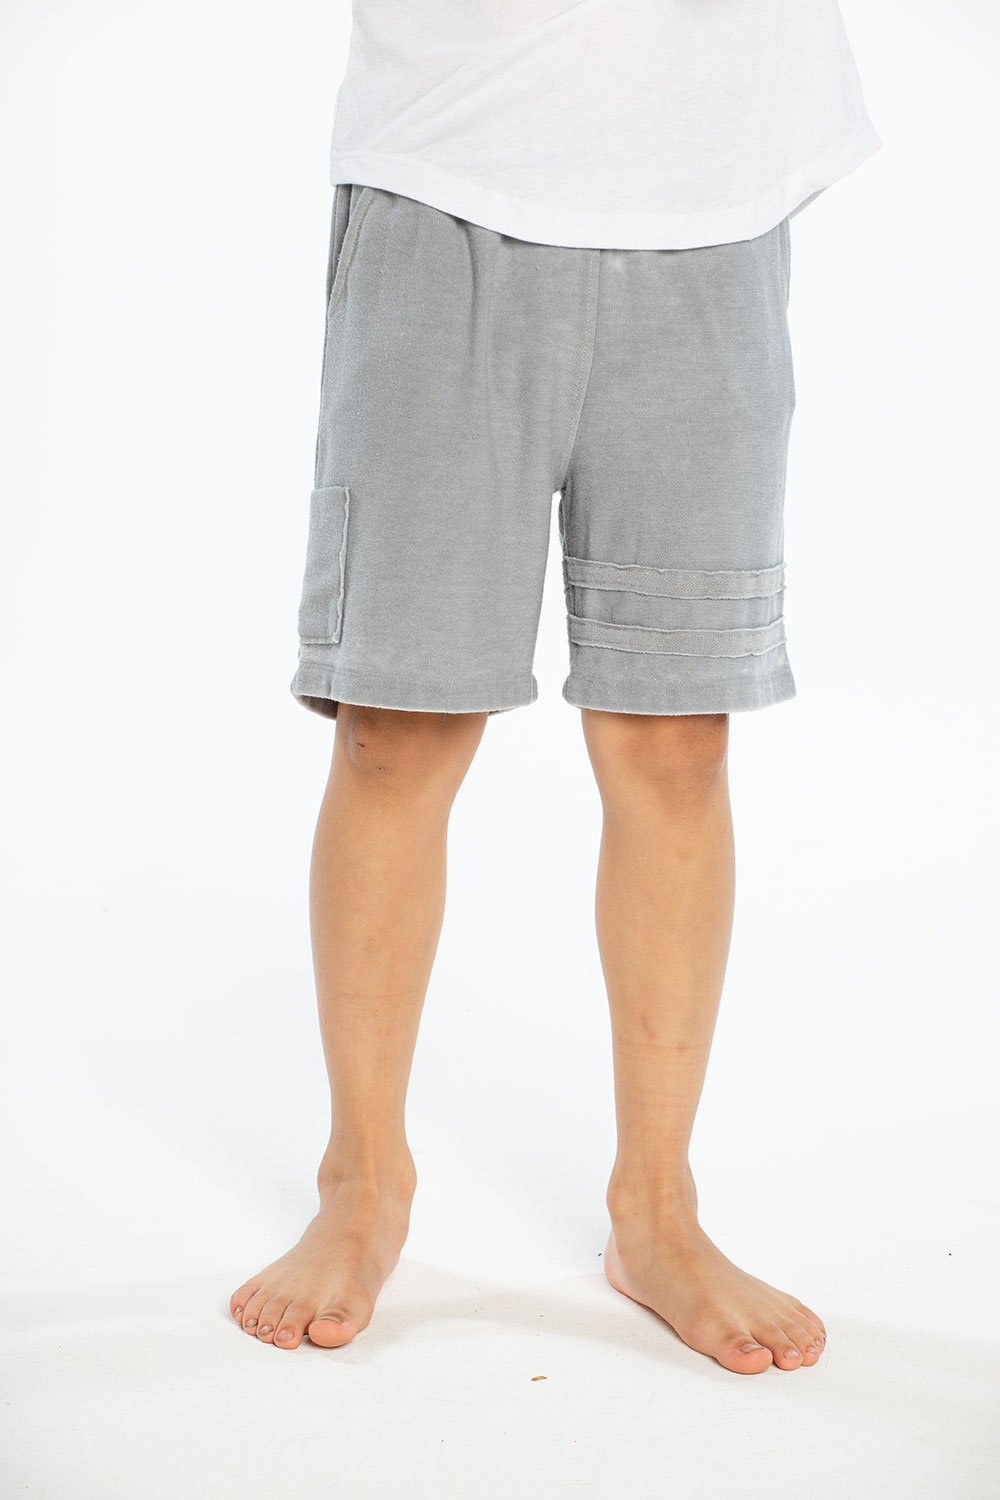 Chaser Cozy Knit Cargo Shorts - Platinum - Bloom Kids Collection - Chaser